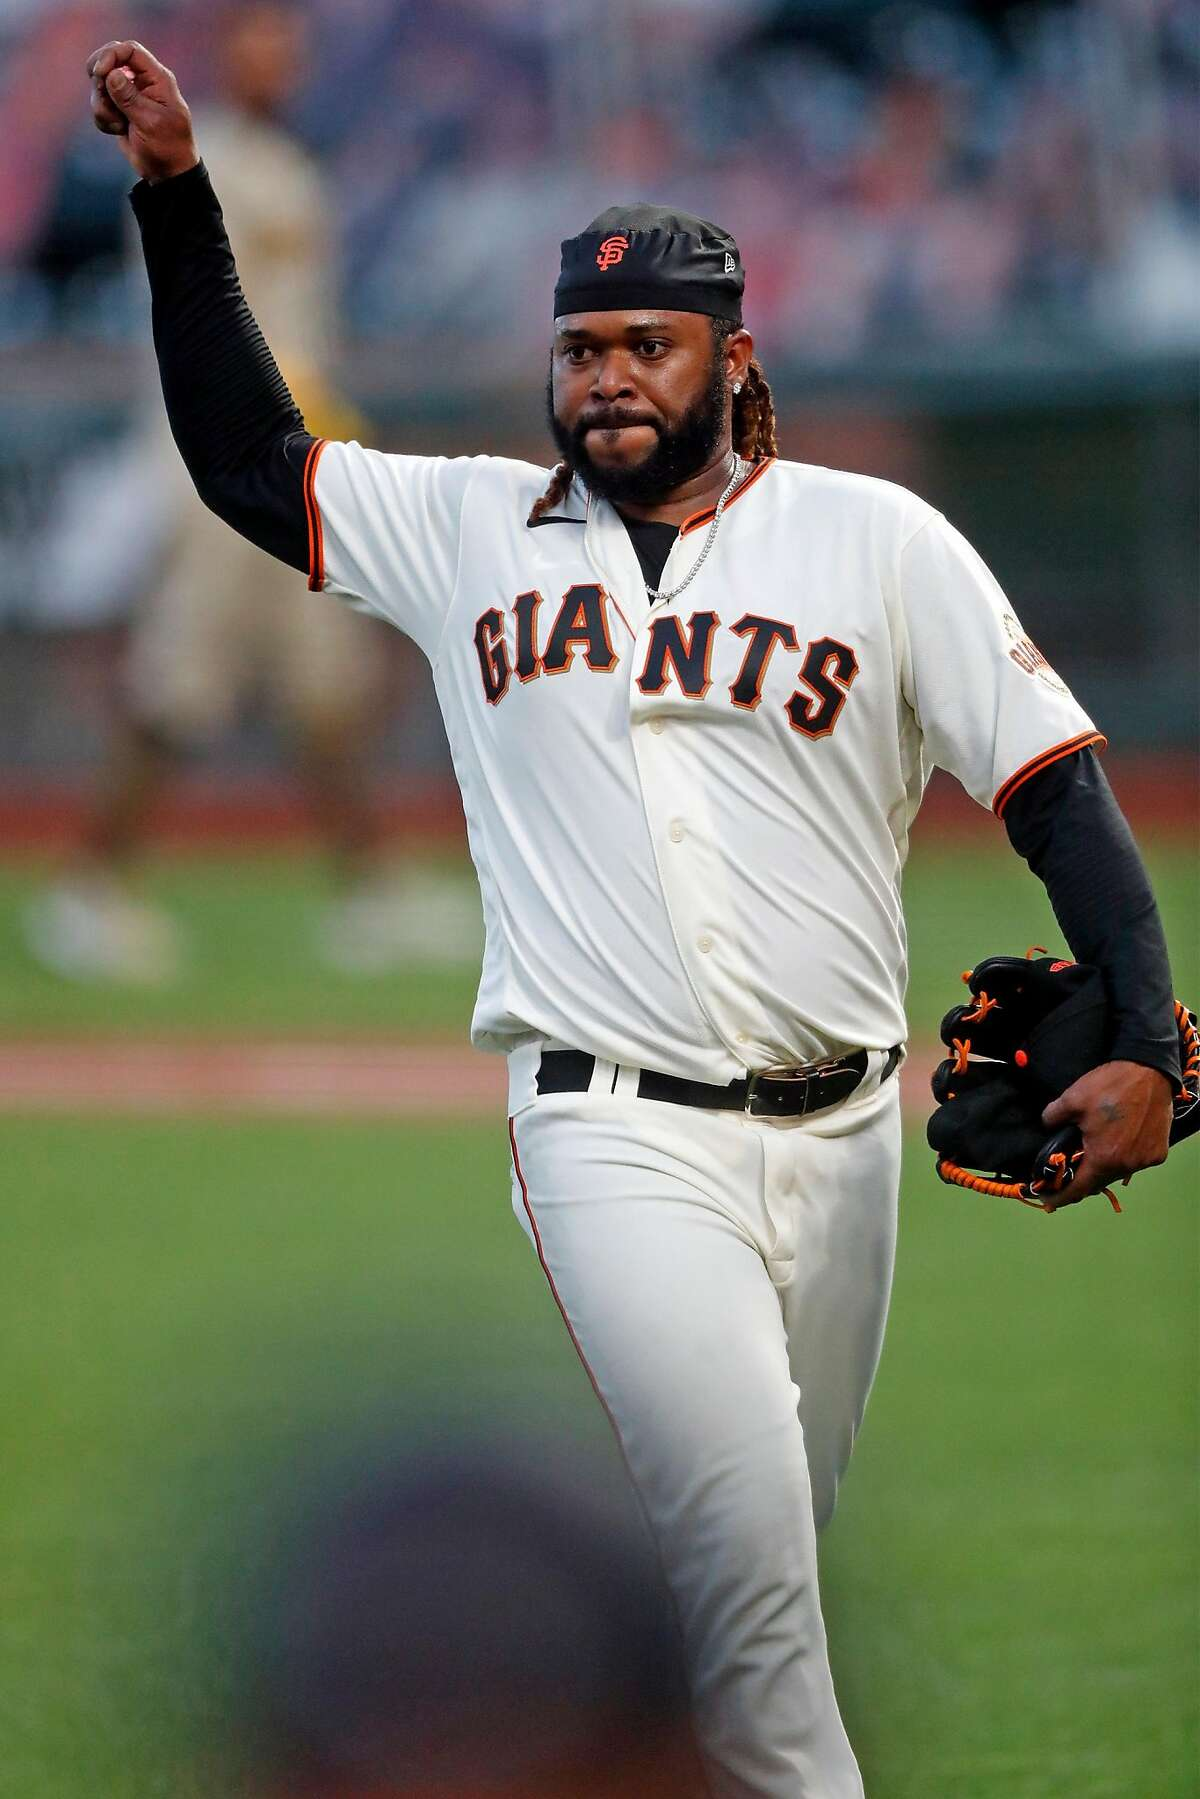 San Francisco Giants' Johnny Cueto throws his gum after being removed from game in 4th inning against San Diego Padres during MLB game at Oracle Park in San Francisco, Calif., on Wednesday, July 29, 2020.